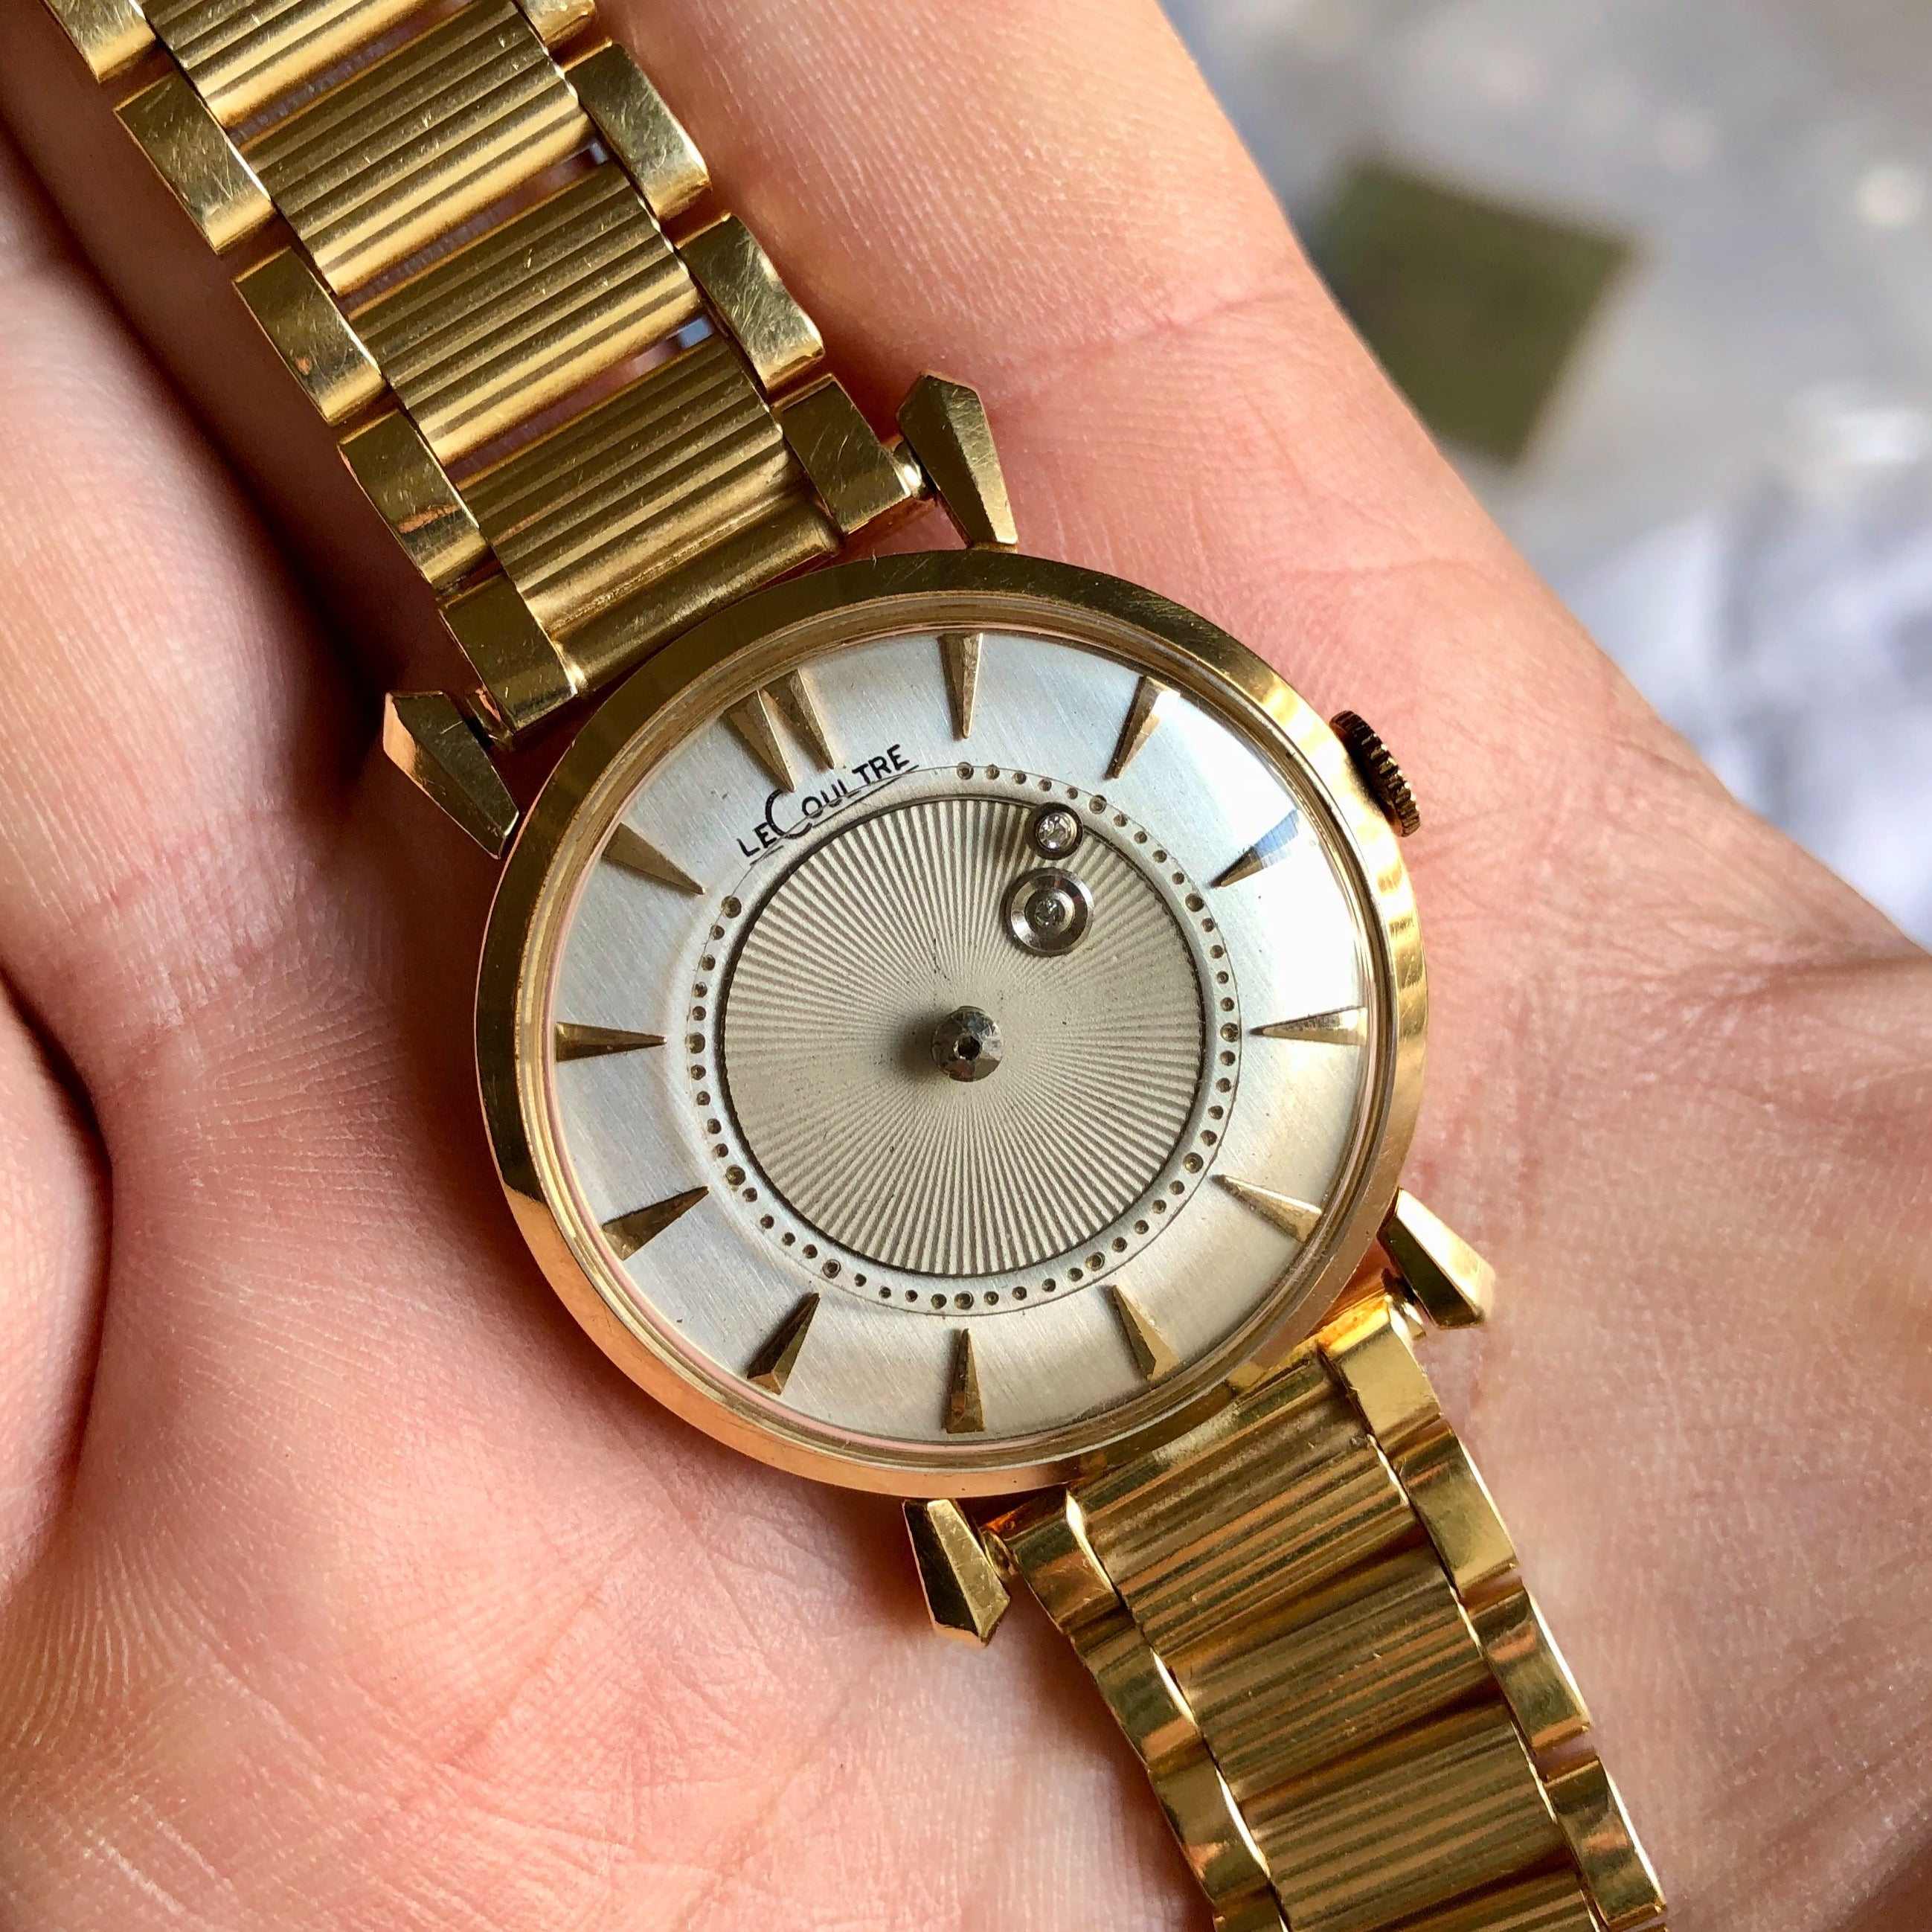 Vintage LeCoultre Mystery Dial 14K Yellow Gold Fancy Lugs Wristwatch Circa 1950s - Hashtag Watch Company